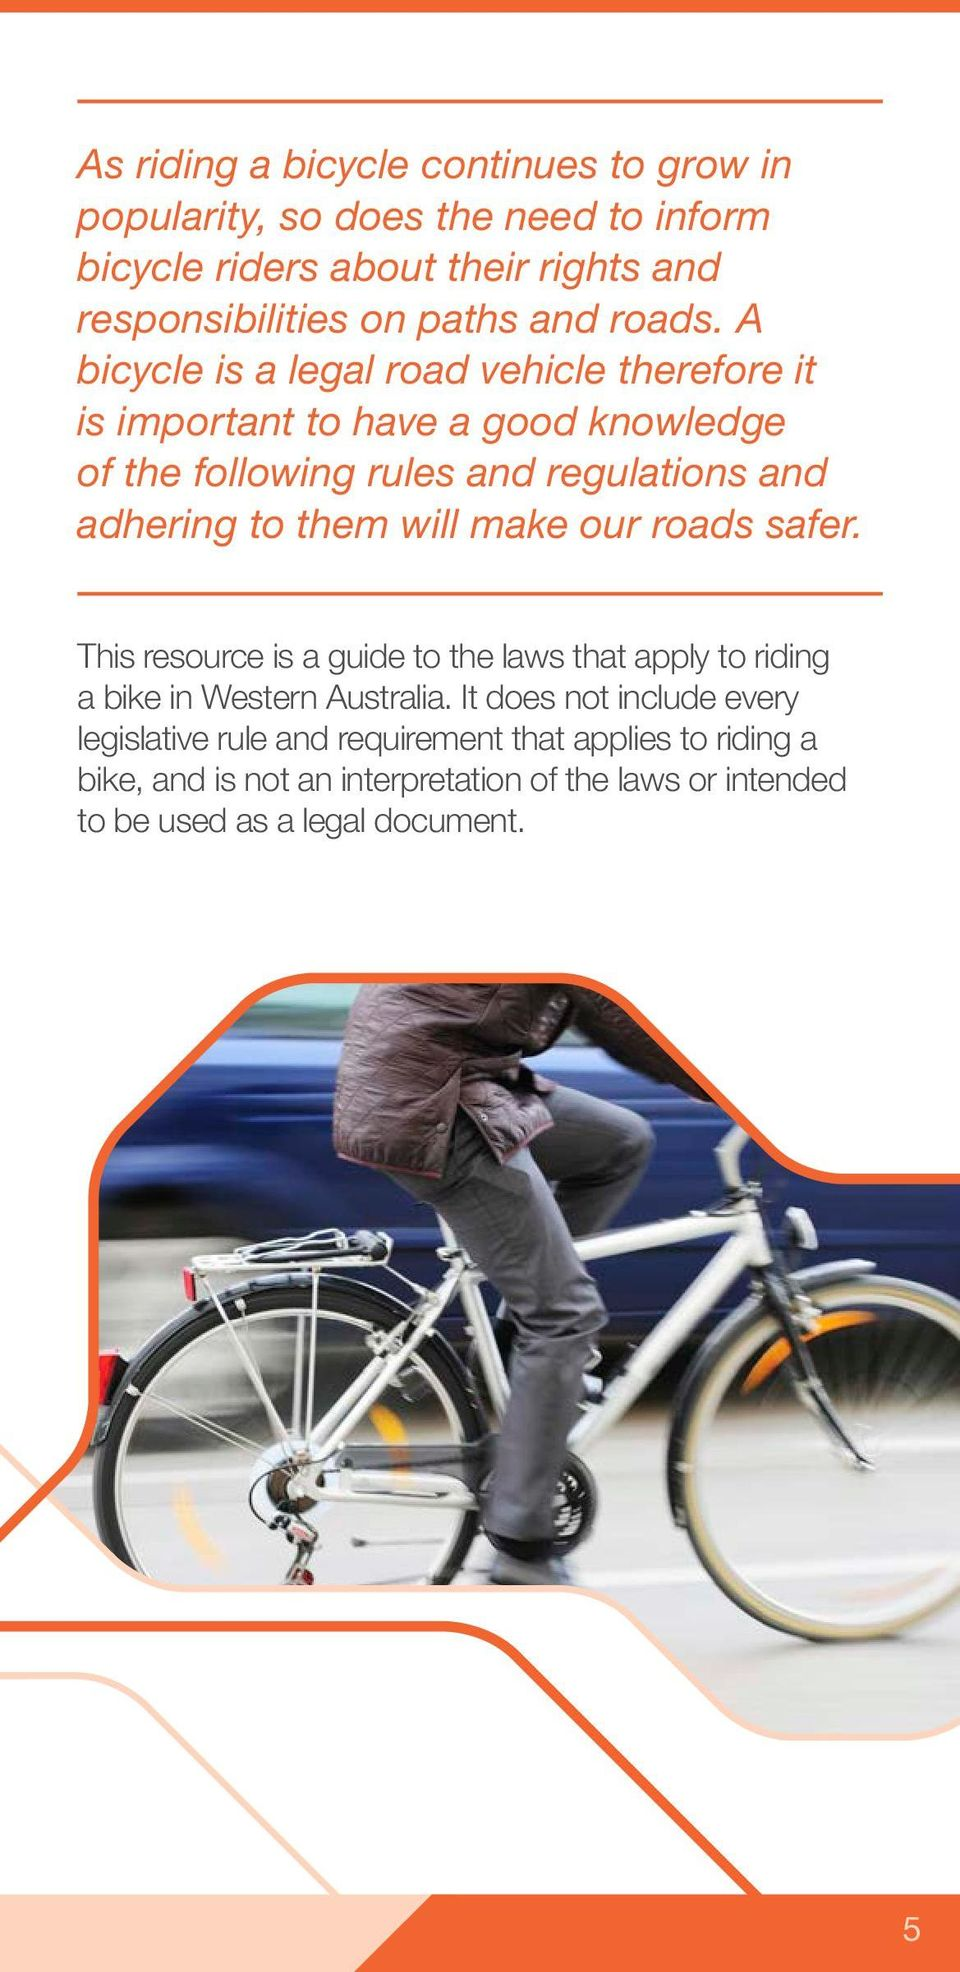 A bicycle is a legal road vehicle therefore it is important to have a good knowledge of the following rules and regulations and adhering to them